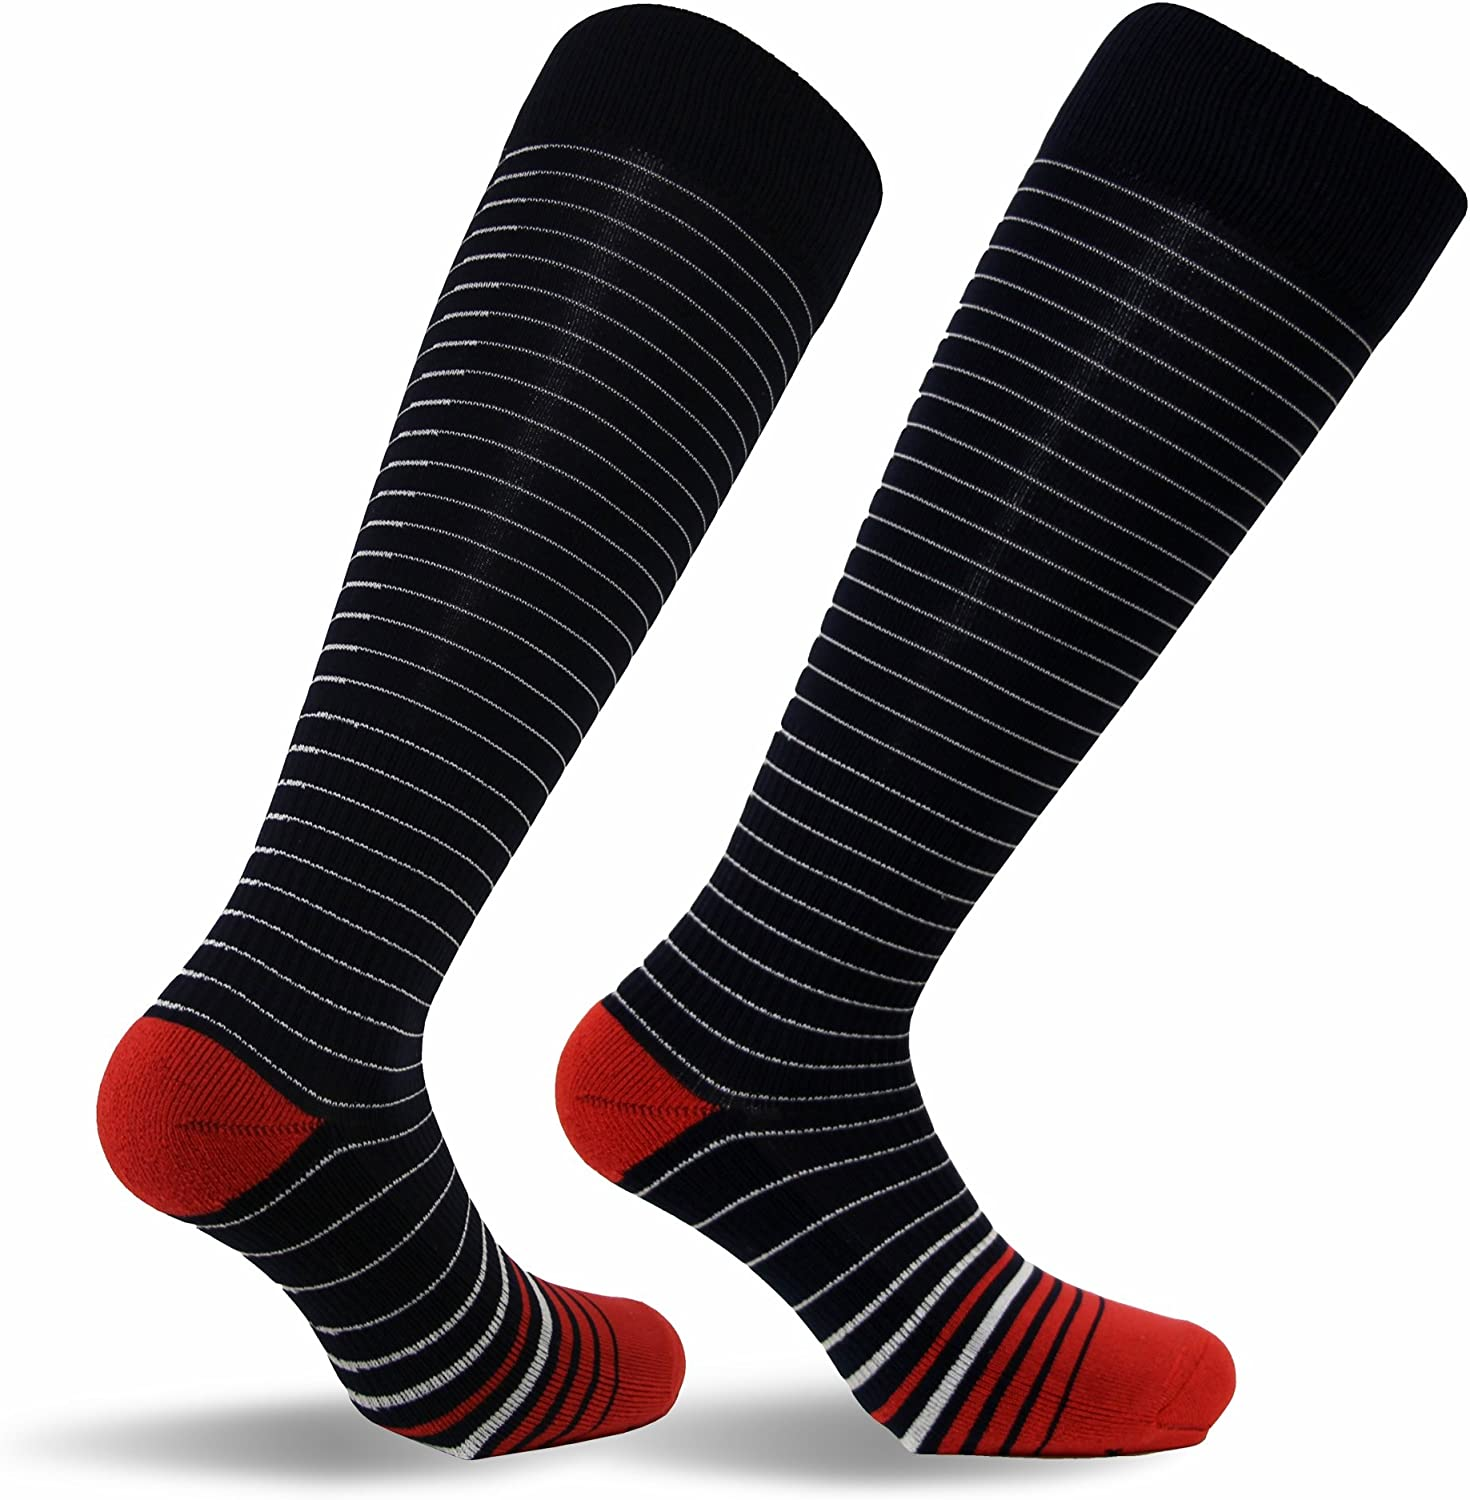 Travelsox TSS6000 Best Patented Graduated Compression Performance Travel /& Dress Socks With DryStat Pairs